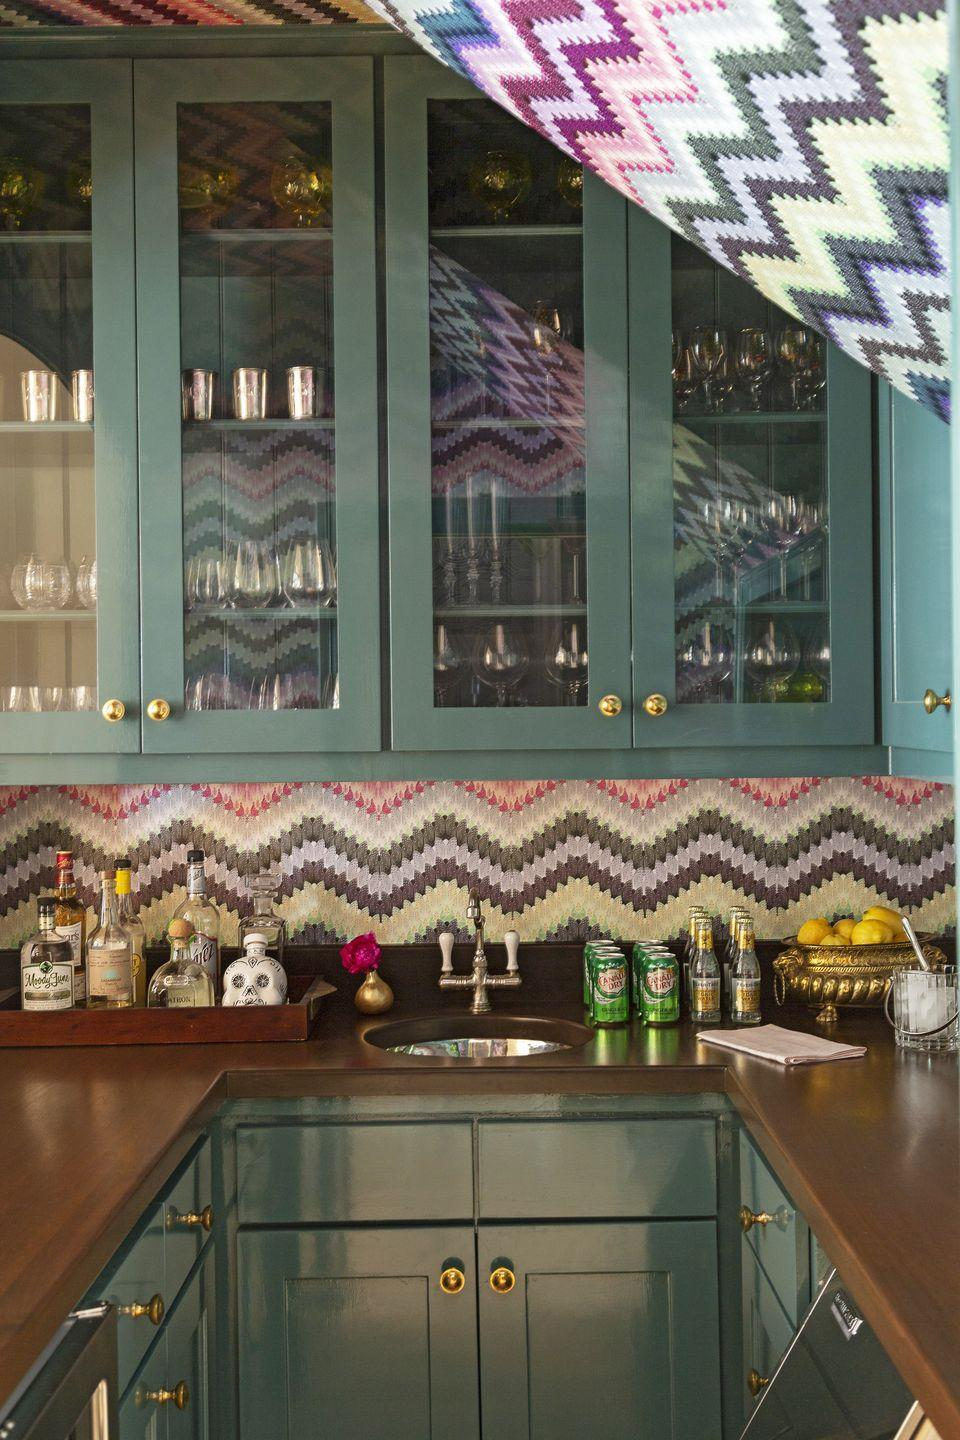 "<p>Bold teal cabinetry (Nocturnal Sea by <a href=""https://www.prattandlambert.com/"" rel=""nofollow noopener"" target=""_blank"" data-ylk=""slk:Pratt & Lambert"" class=""link rapid-noclick-resp"">Pratt & Lambert</a>) and exuberant zig-zag wallpaper (<a href=""https://www.timorousbeasties.com/"" rel=""nofollow noopener"" target=""_blank"" data-ylk=""slk:Timorous Beasties"" class=""link rapid-noclick-resp"">Timorous Beasties</a>) make quite the statement in this home bar by <a href=""https://www.veranda.com/decorating-ideas/house-tours/a34883406/angie-hranowsky-austin-house-tour/"" rel=""nofollow noopener"" target=""_blank"" data-ylk=""slk:Angie Hranowsky"" class=""link rapid-noclick-resp"">Angie Hranowsky</a>, but it's the carefully curated trays that are catching our eyes on this pass. The owner's most-used elixirs are within easy reach without cluttering the countertop thanks to stylish bar trays and antique bowls. </p>"